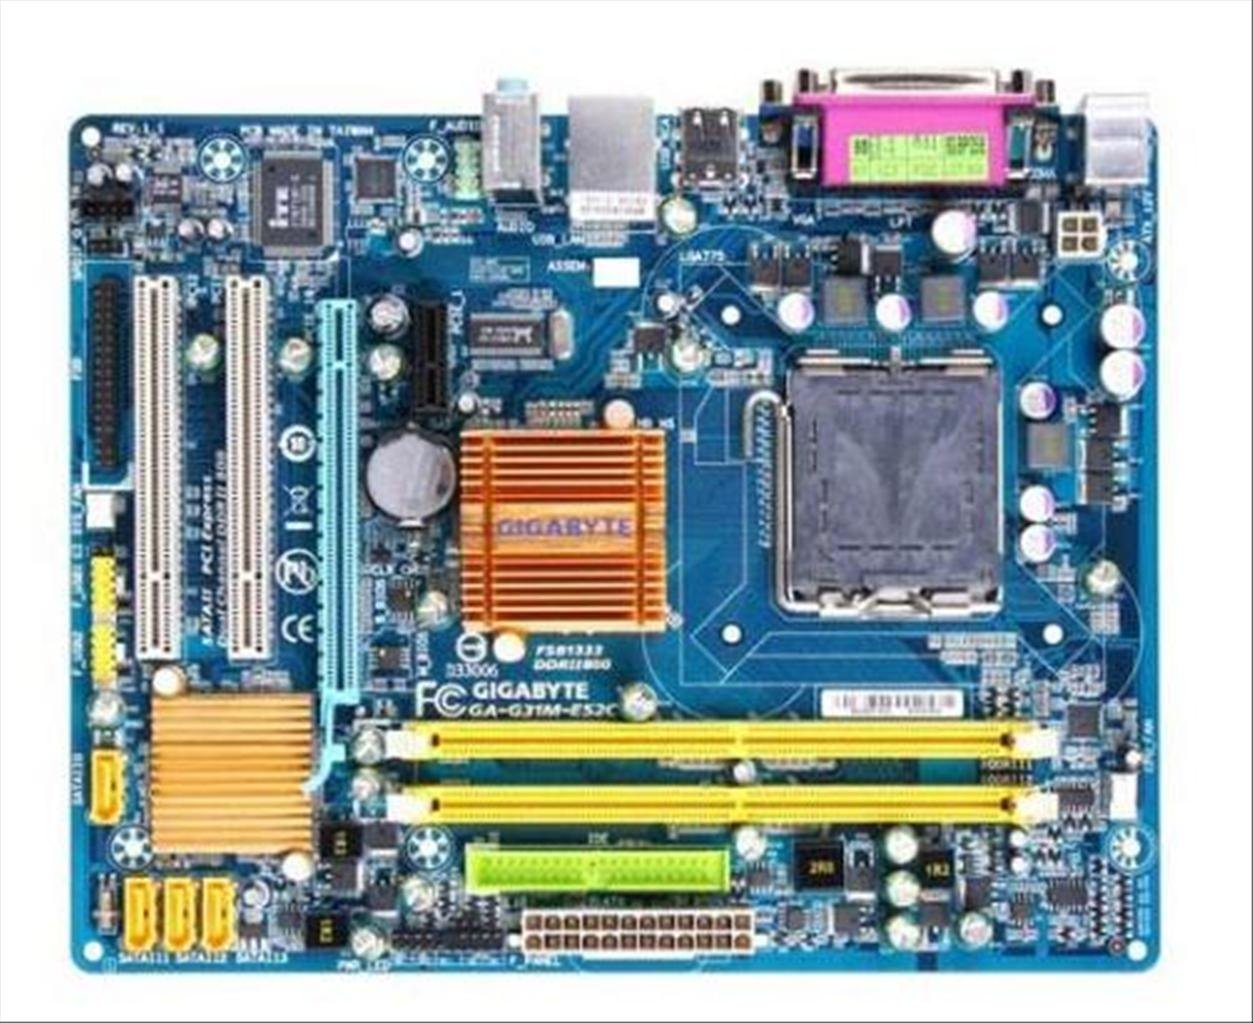 P4m266a 8235 motherboard